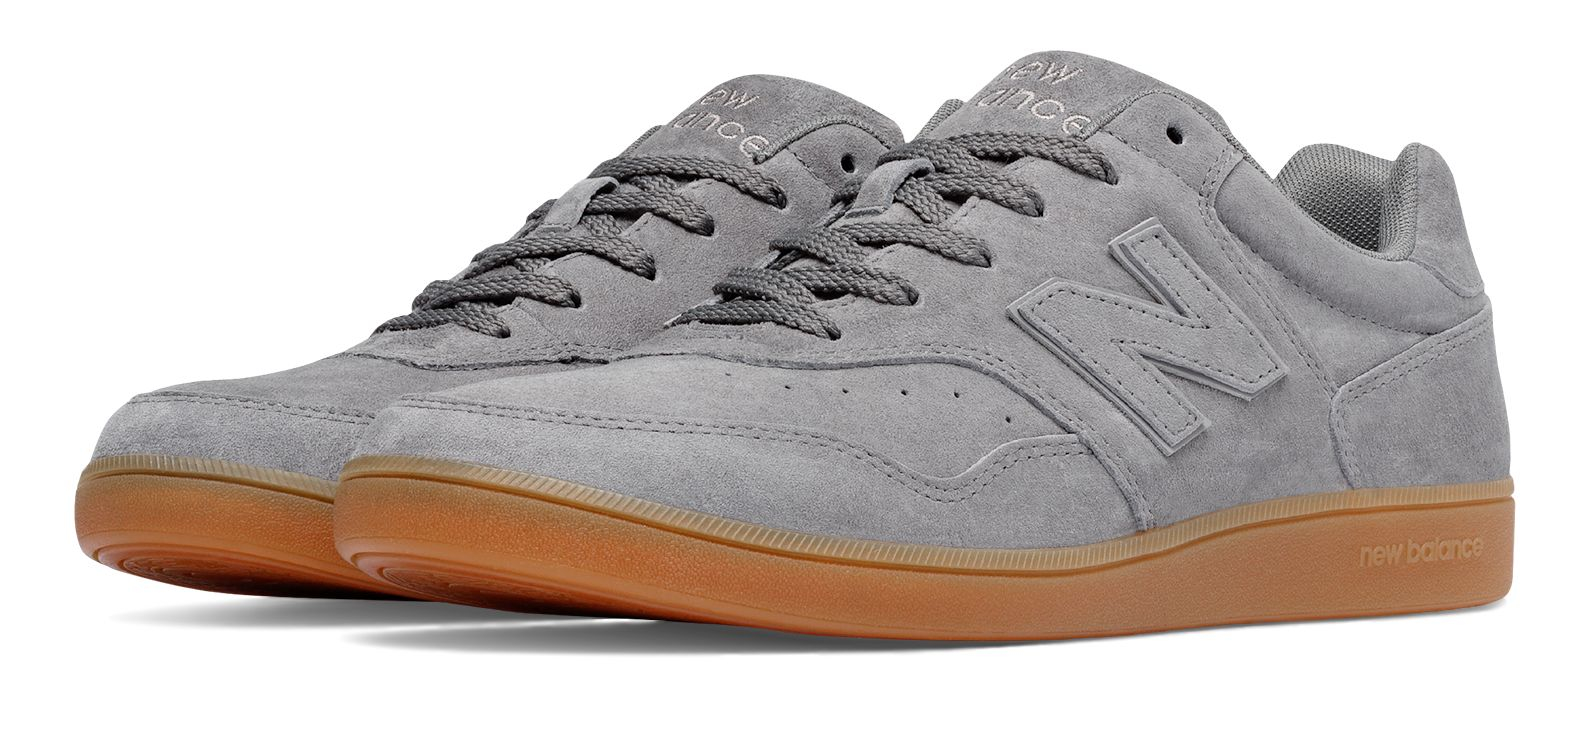 New Balance Suede 288 288 in Charcoal (Gray) for Men - Lyst